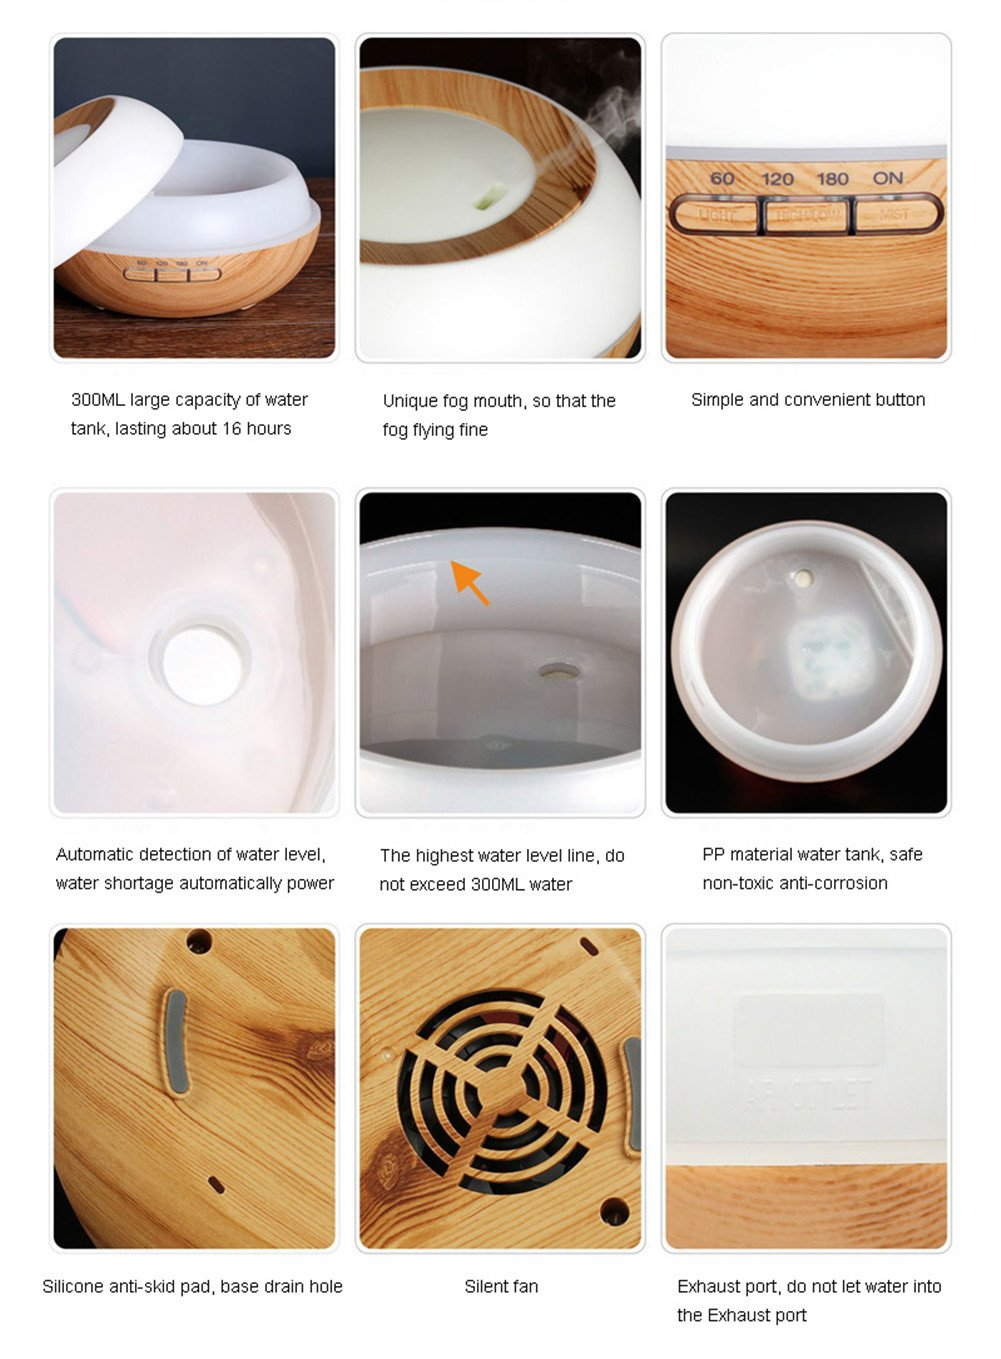 TRADE Yellow Wood Grain Ultrasonic Spray 7 Color Changing Waterless Auto off Perfect Night Companion 300ML Essential Oil Aromatic Air Diffusion Roundness Beauty Humidifier by TRADE® (Image #5)